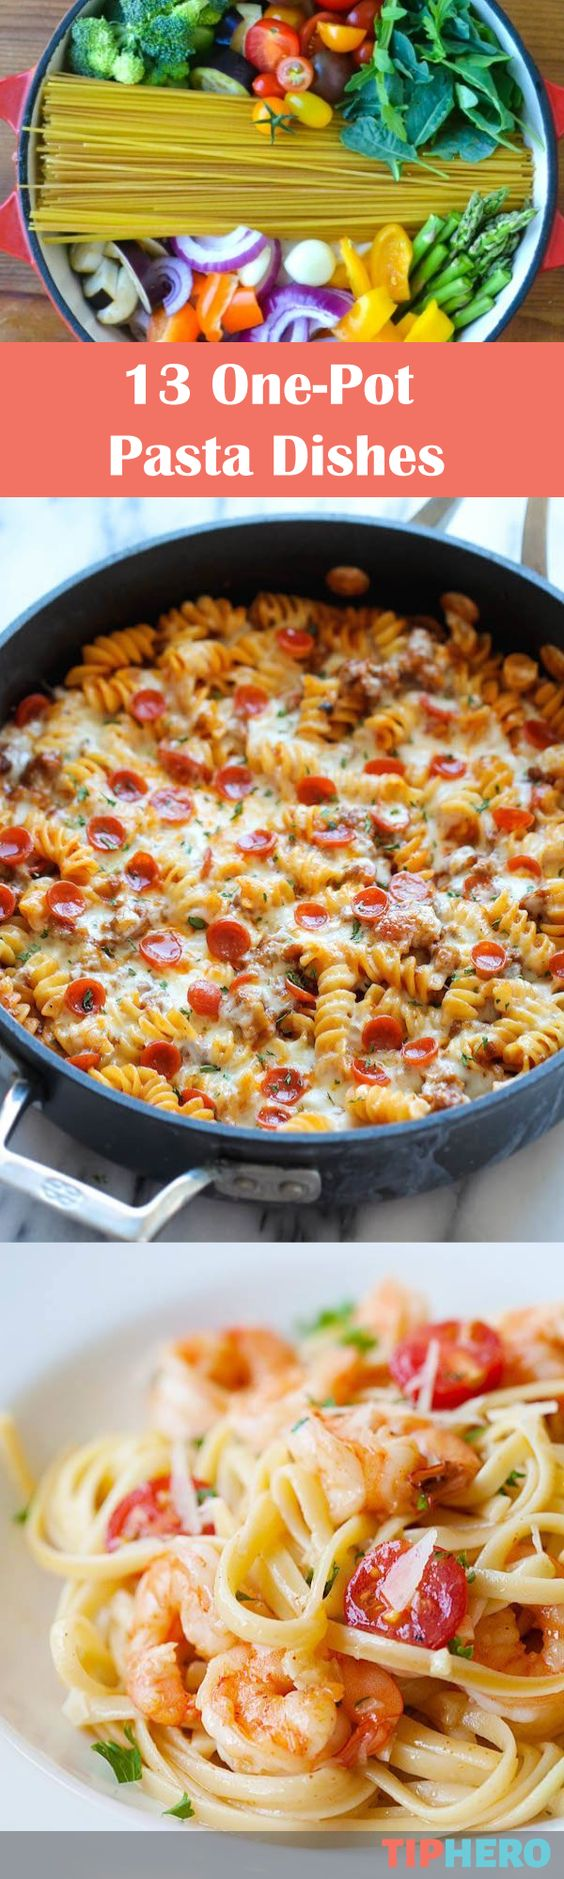 13 One-Pot Pasta Dishes | Make weeknight cooking a breeze with this collection of pasta recipes. Try out a pizza pasta bake or Caprese or Greek Chicken with feta and more! #family #dinner #easymeals